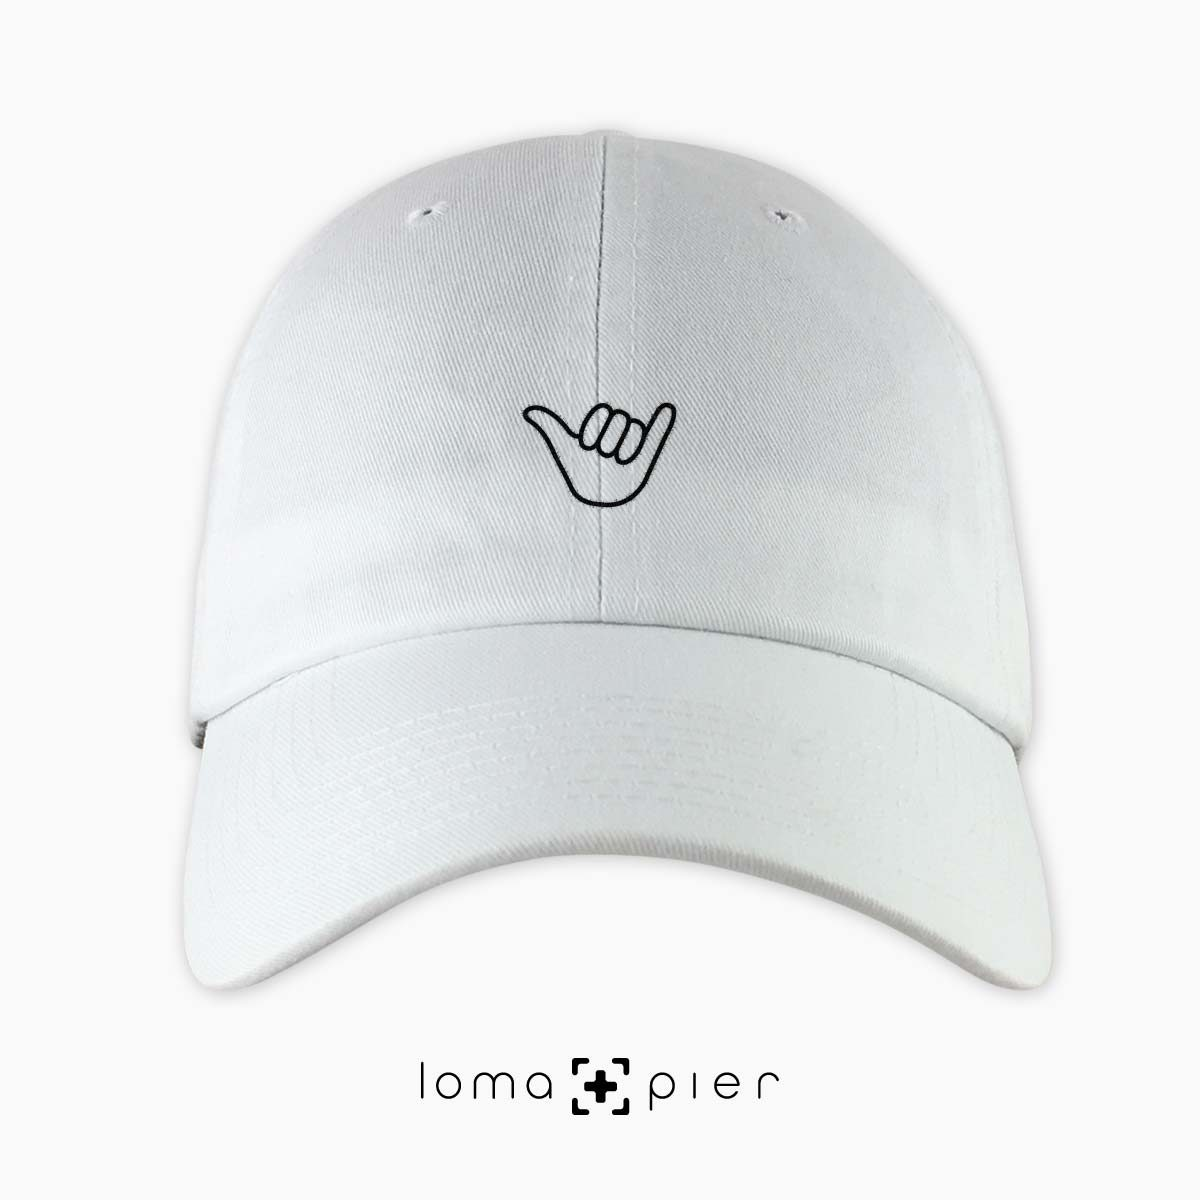 HANG LOOSE icon embroidered on a white unstructured dad hat by loma+pier hat store made in the USA